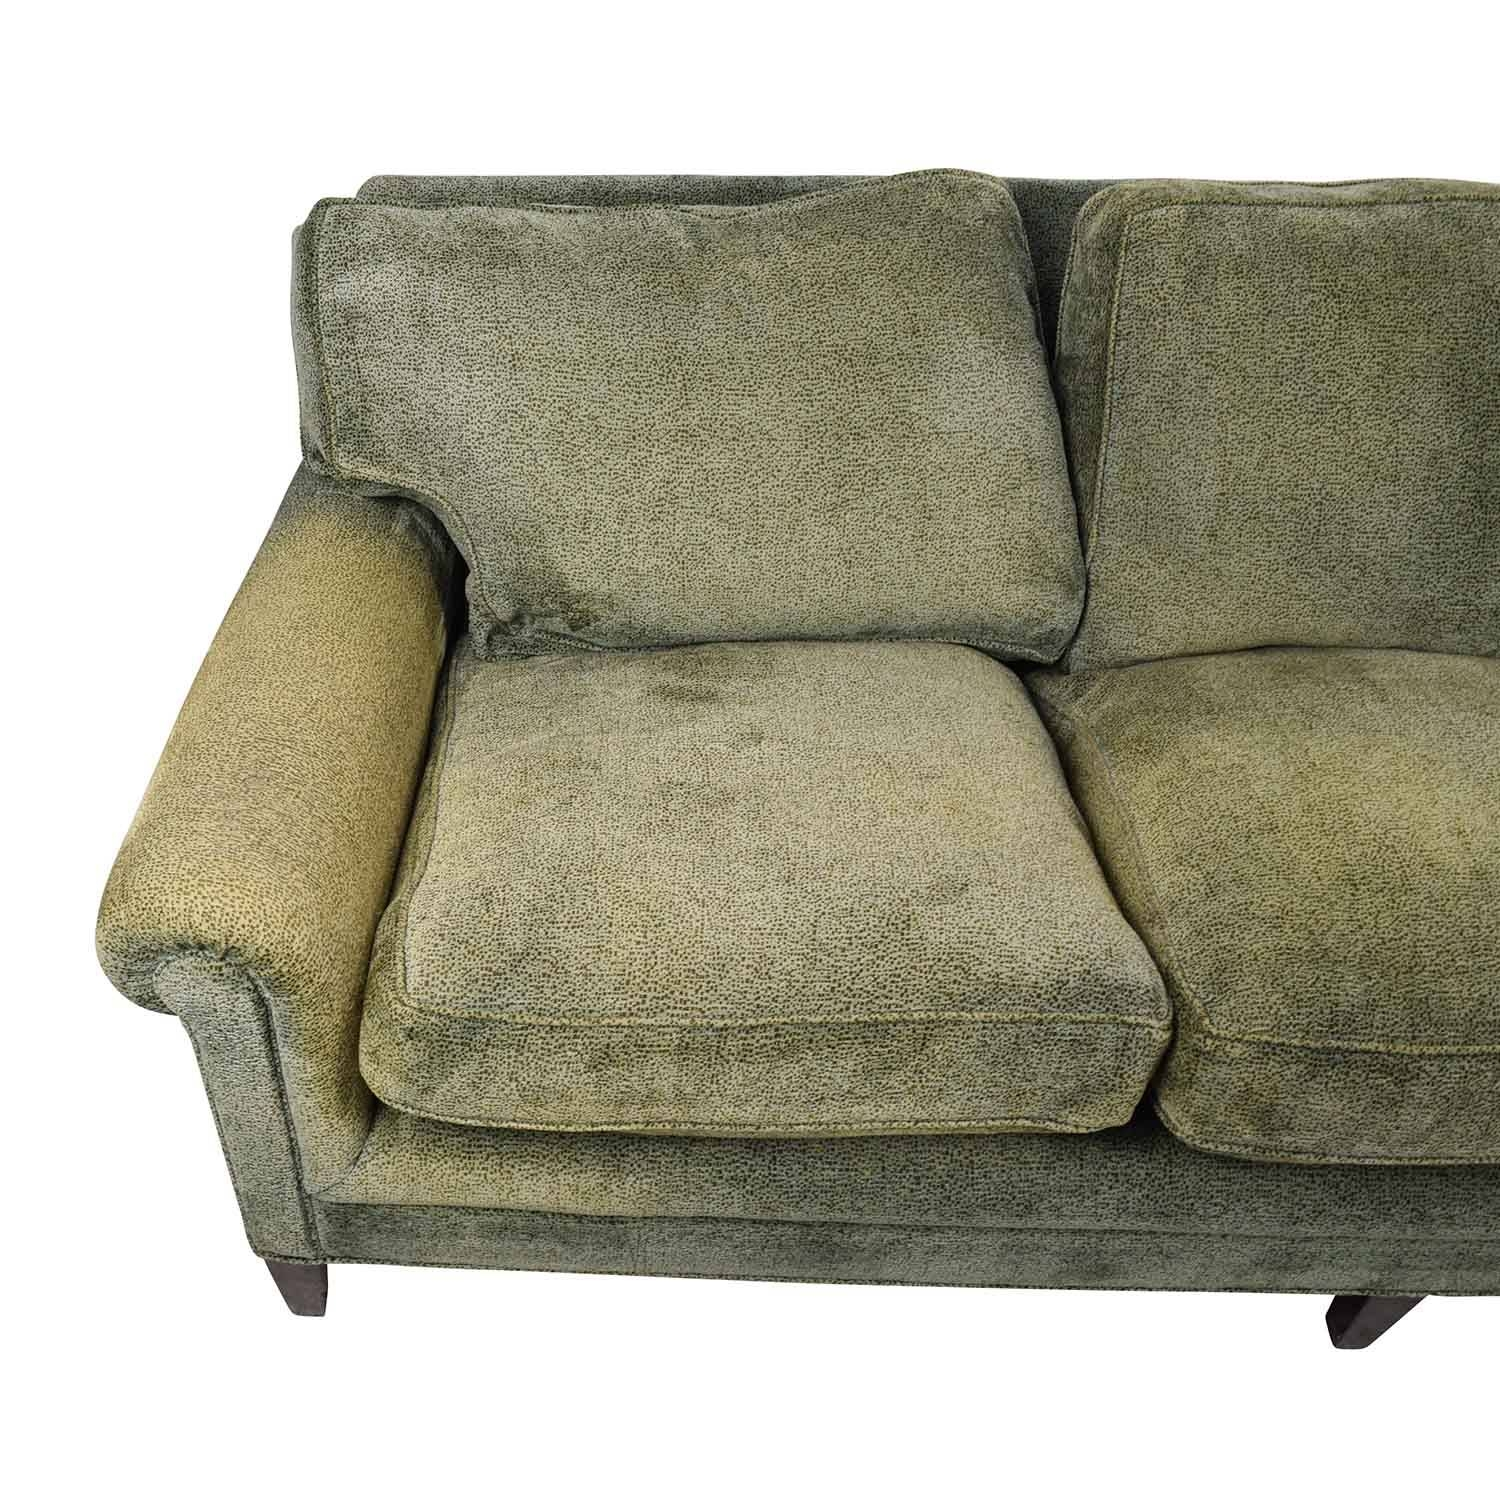 89% Off – George Smith George Smith Classic English Style Sofa / Sofas Inside Classic English Sofas (View 6 of 30)